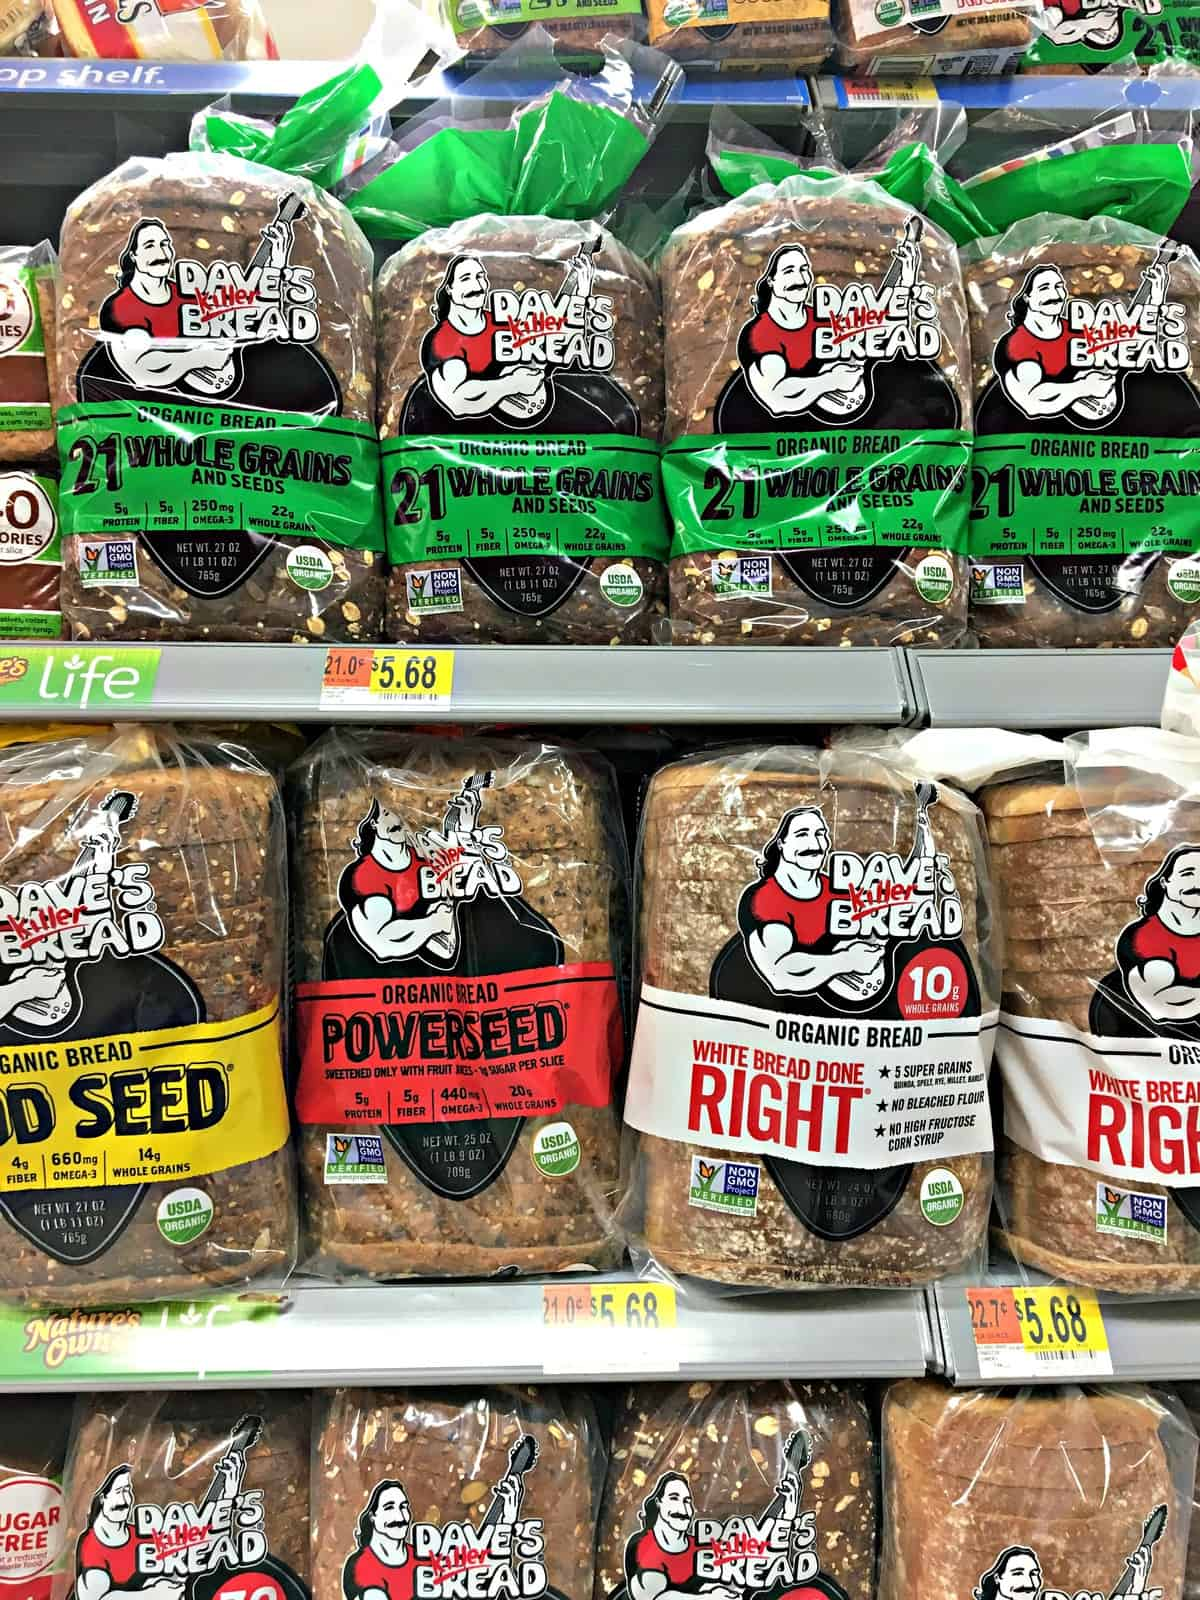 Dave's Killer Bread, available at Walmart.